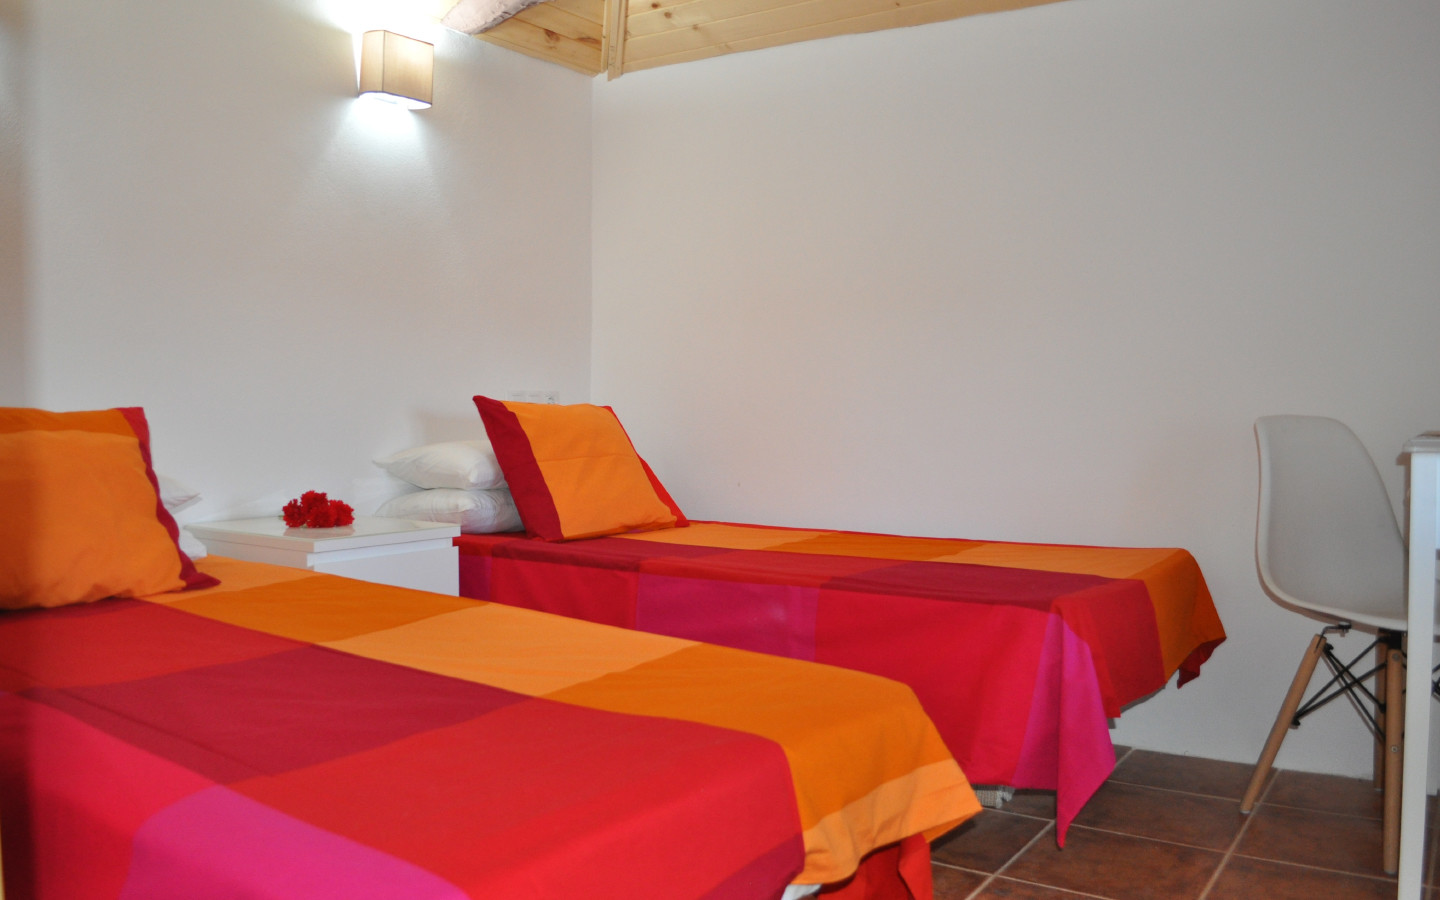 bedroom_huerta_pequena_self catering_holiday_accommodation_Montefrio_www.rural-andalucia.com